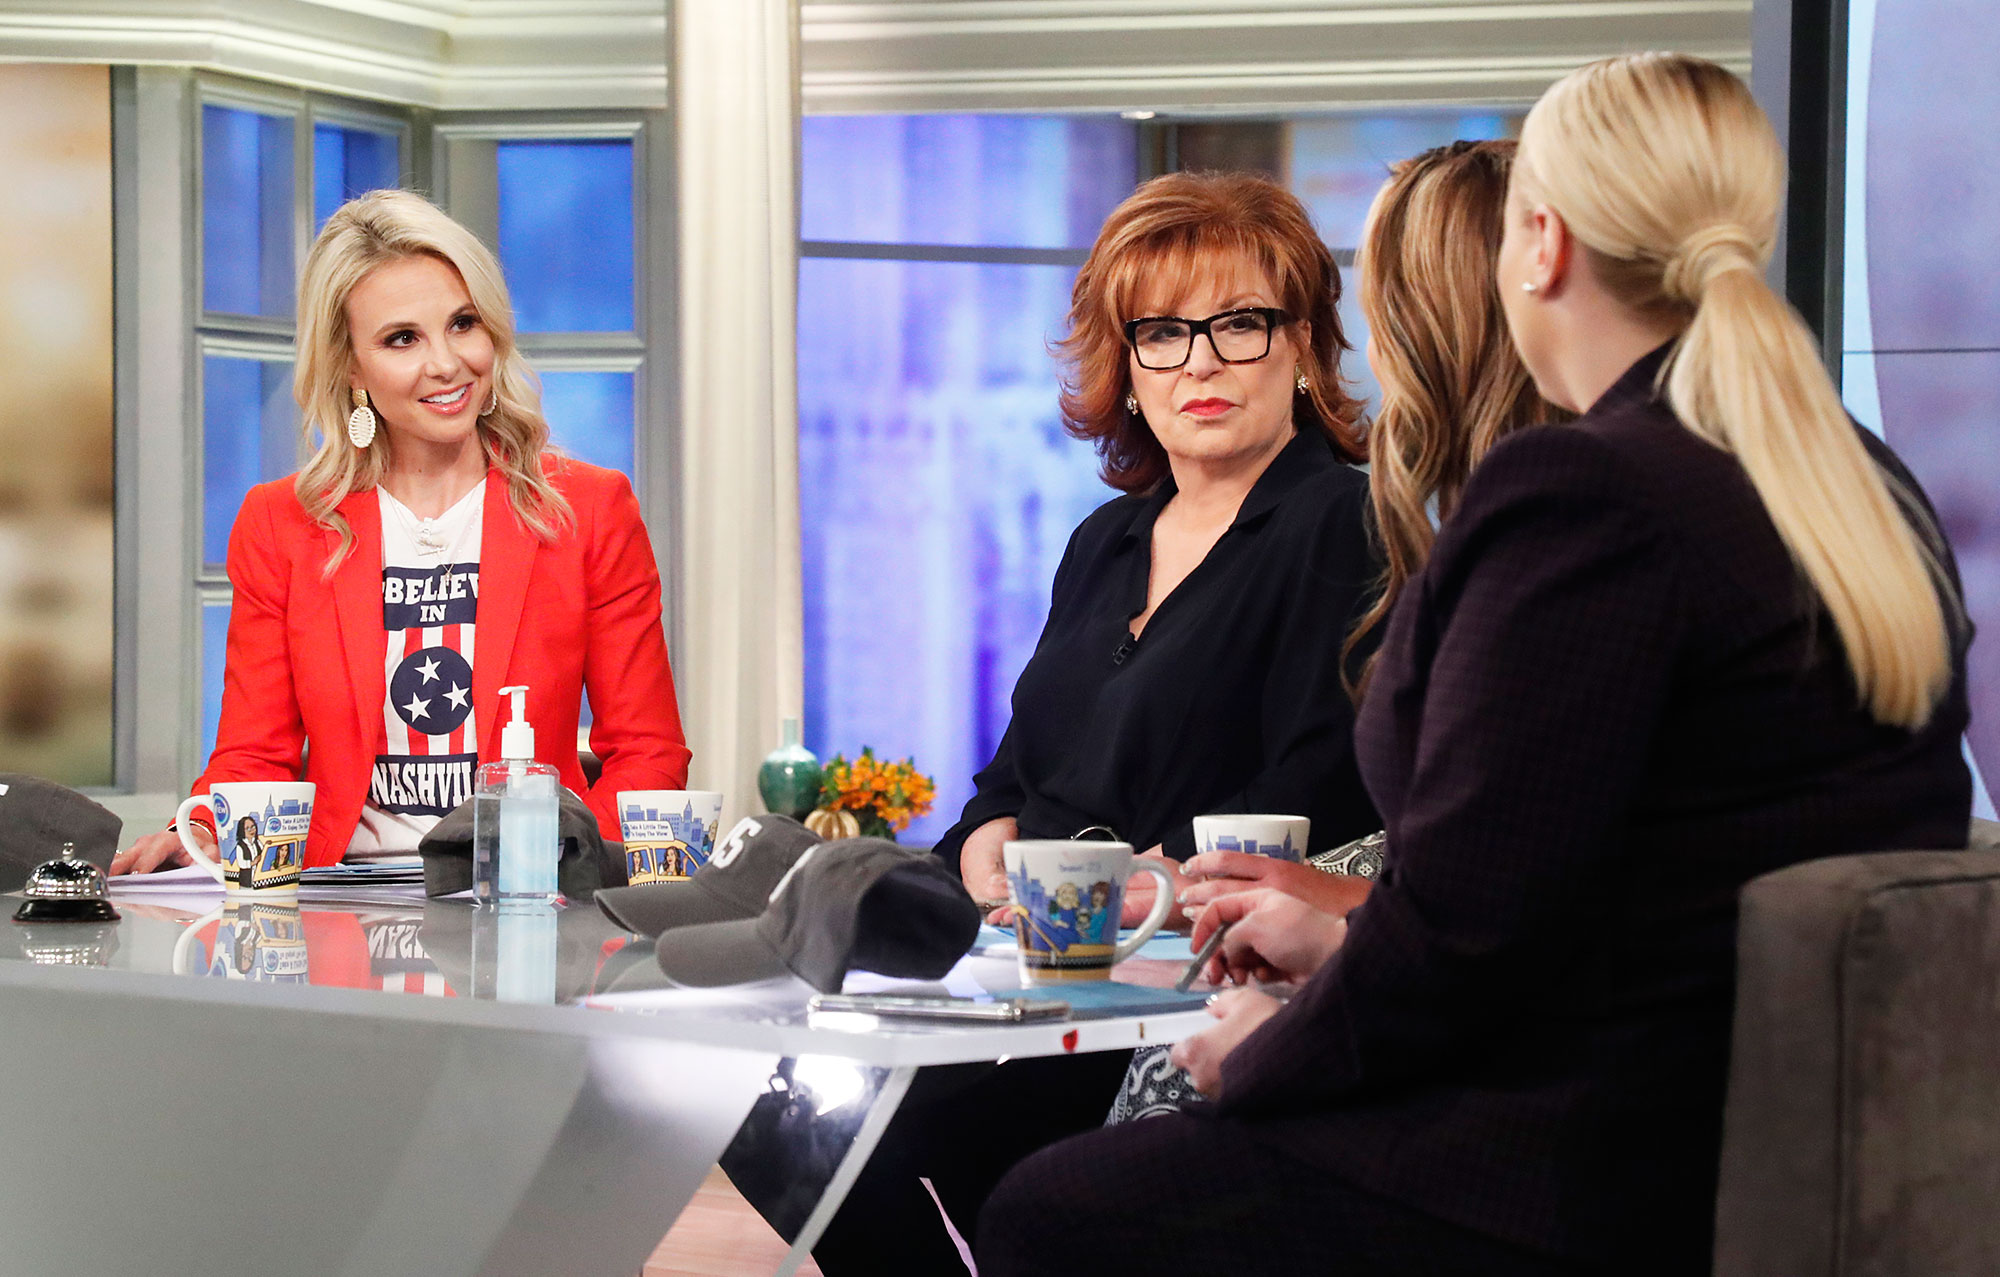 Elisabeth Hasselbeck and Joy Behar on The View Joy Behar to Retire From The View in 2022